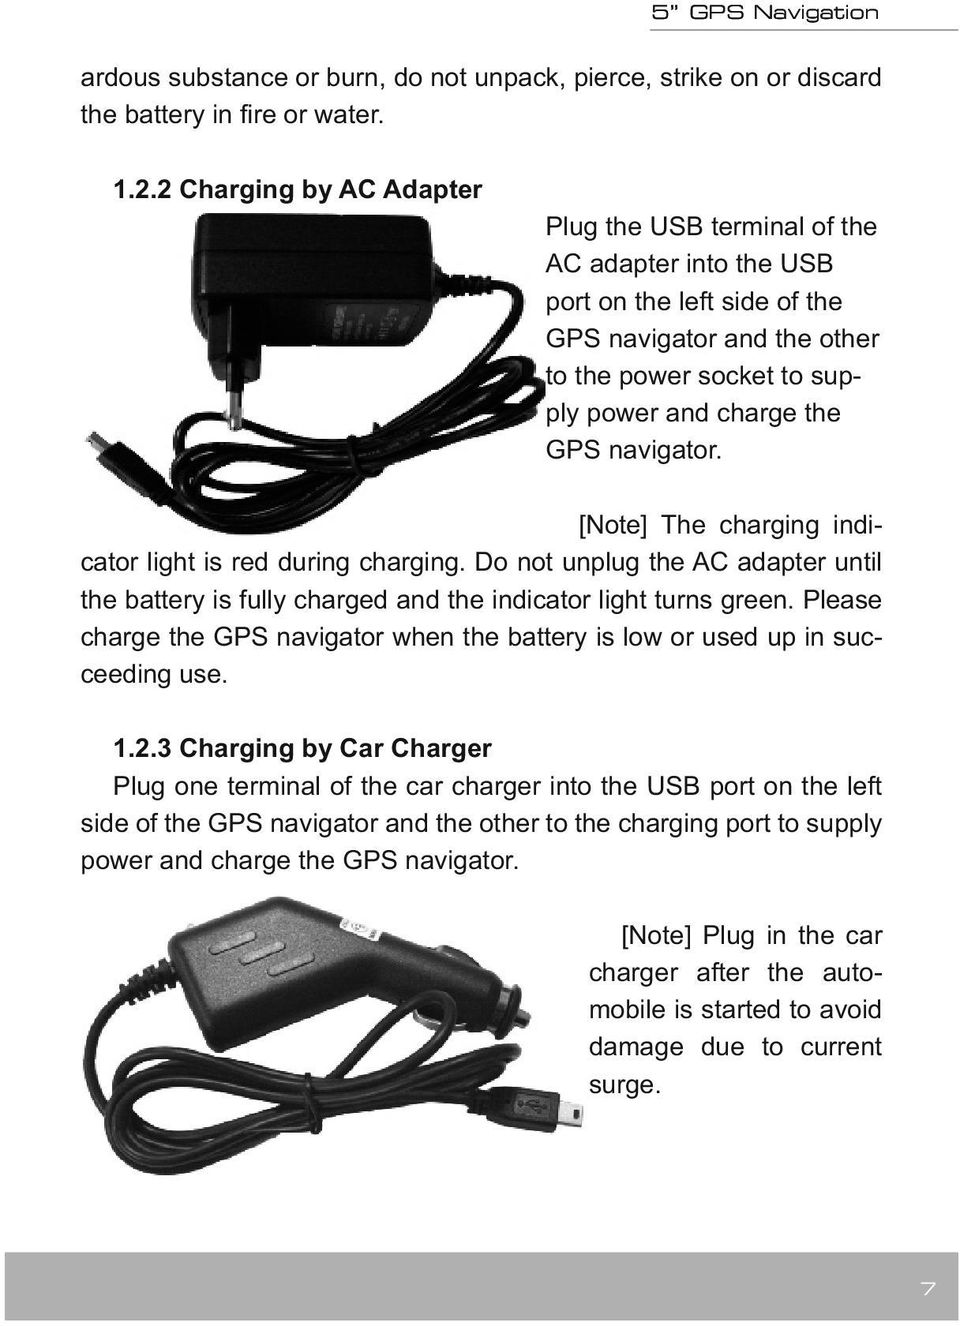 [Note] The charging indicator light is red during charging. Do not unplug the AC adapter until the battery is fully charged and the indicator light turns green.